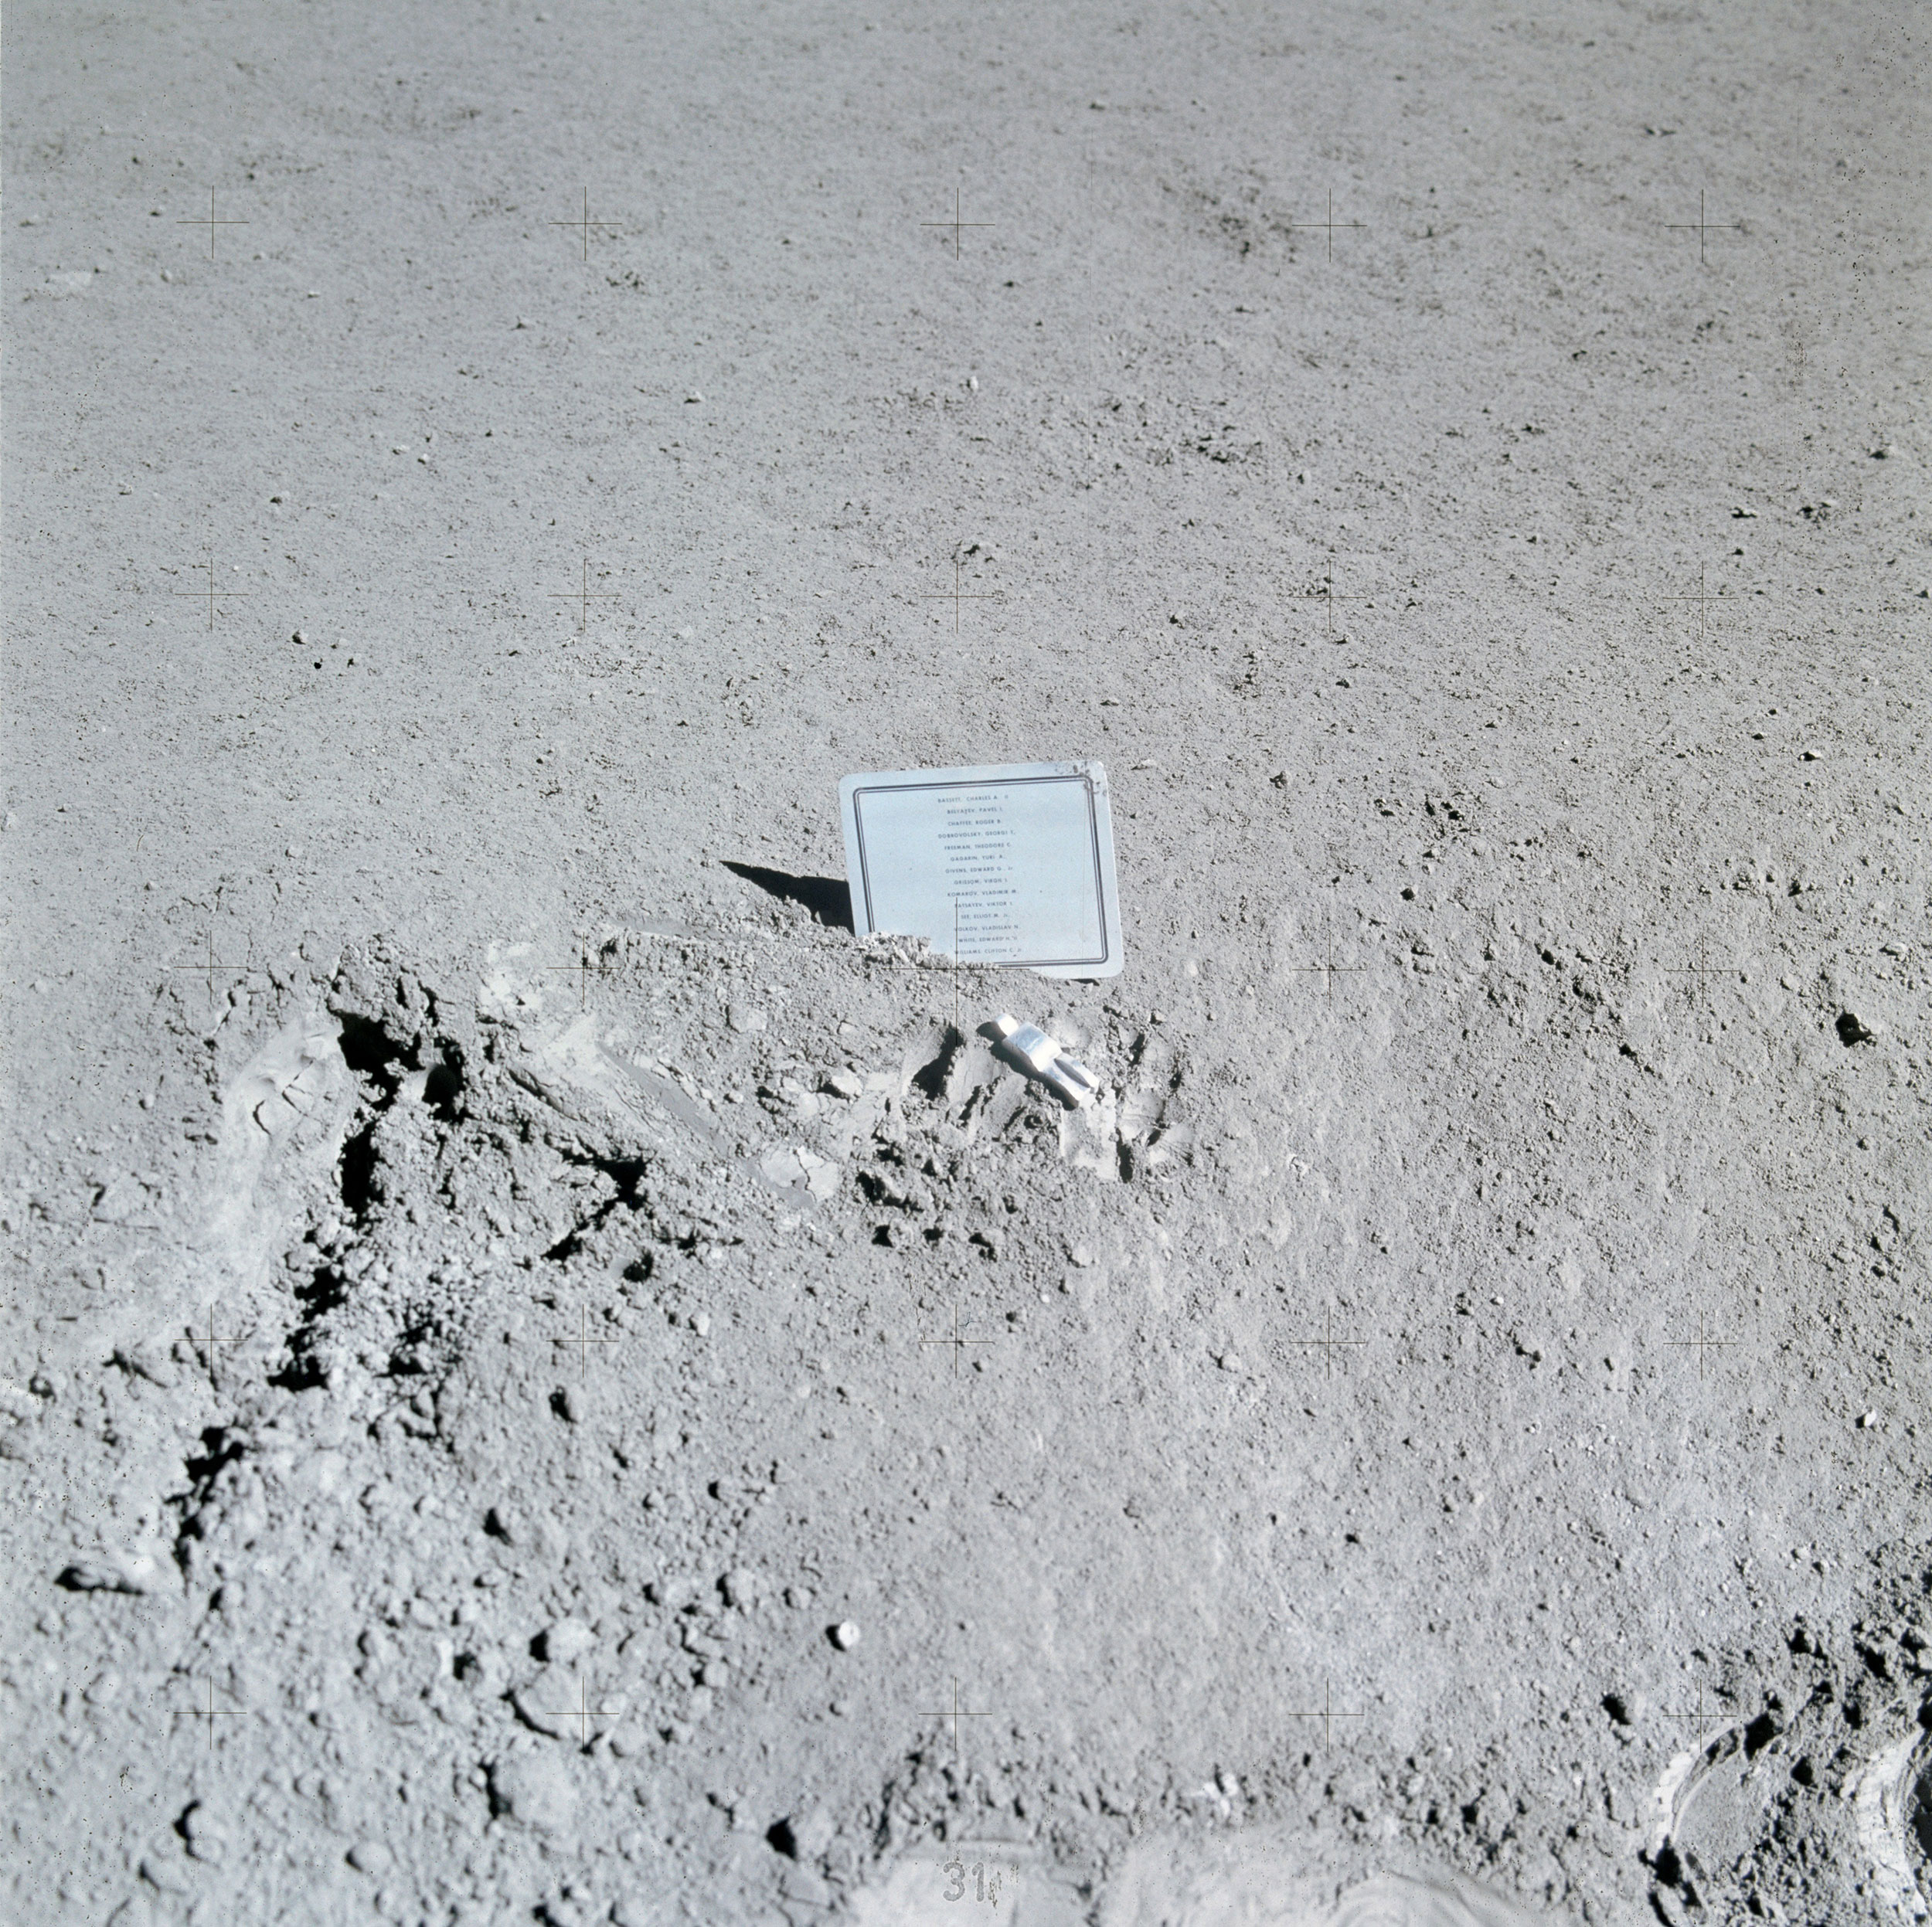 William Anders, <i>Earthrise</i>, 1968. Courtesy NASA.